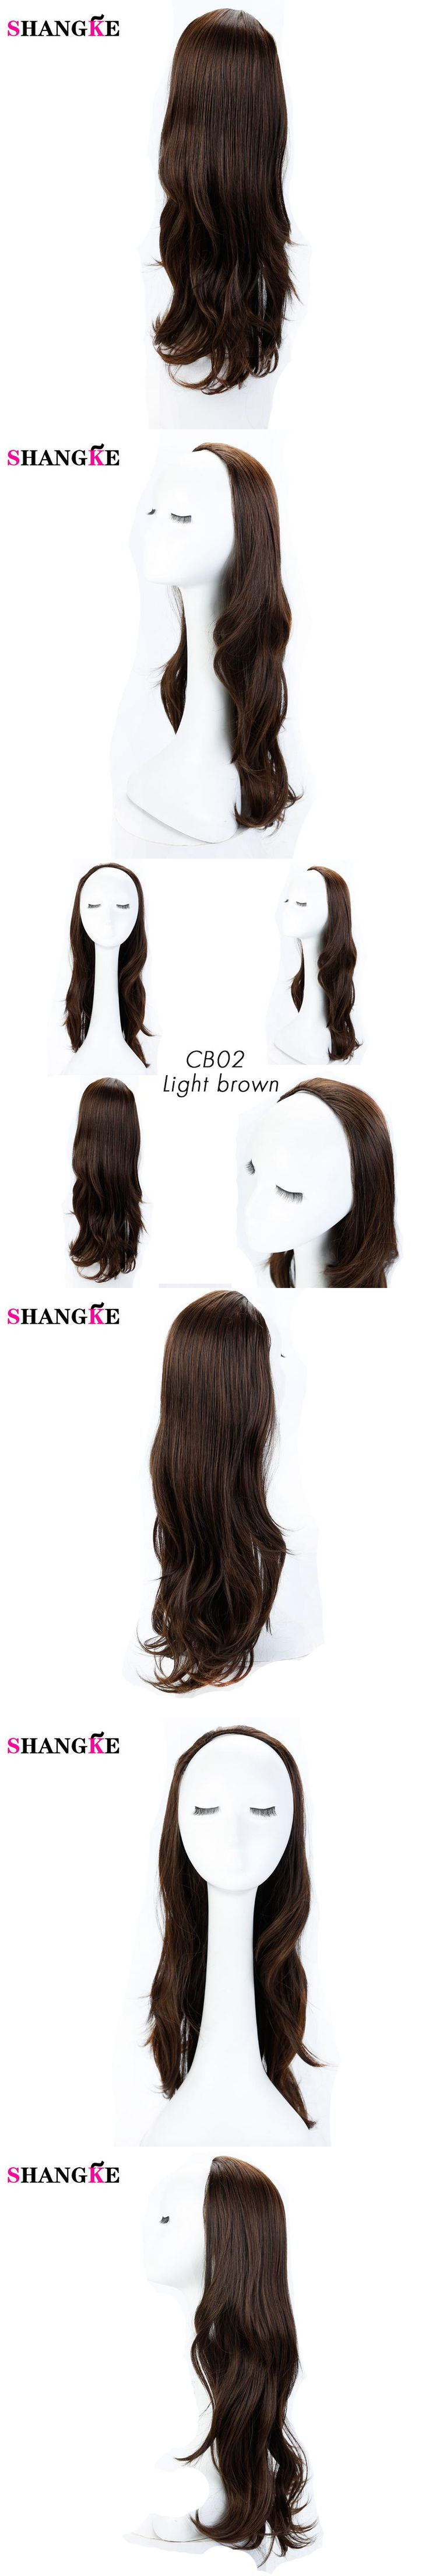 SHANGKE Synthetic Half Wigs 3/4 Hair High Temperature Fiber wigs Long Wavy Headband Wigs For American European Daily Use & Party